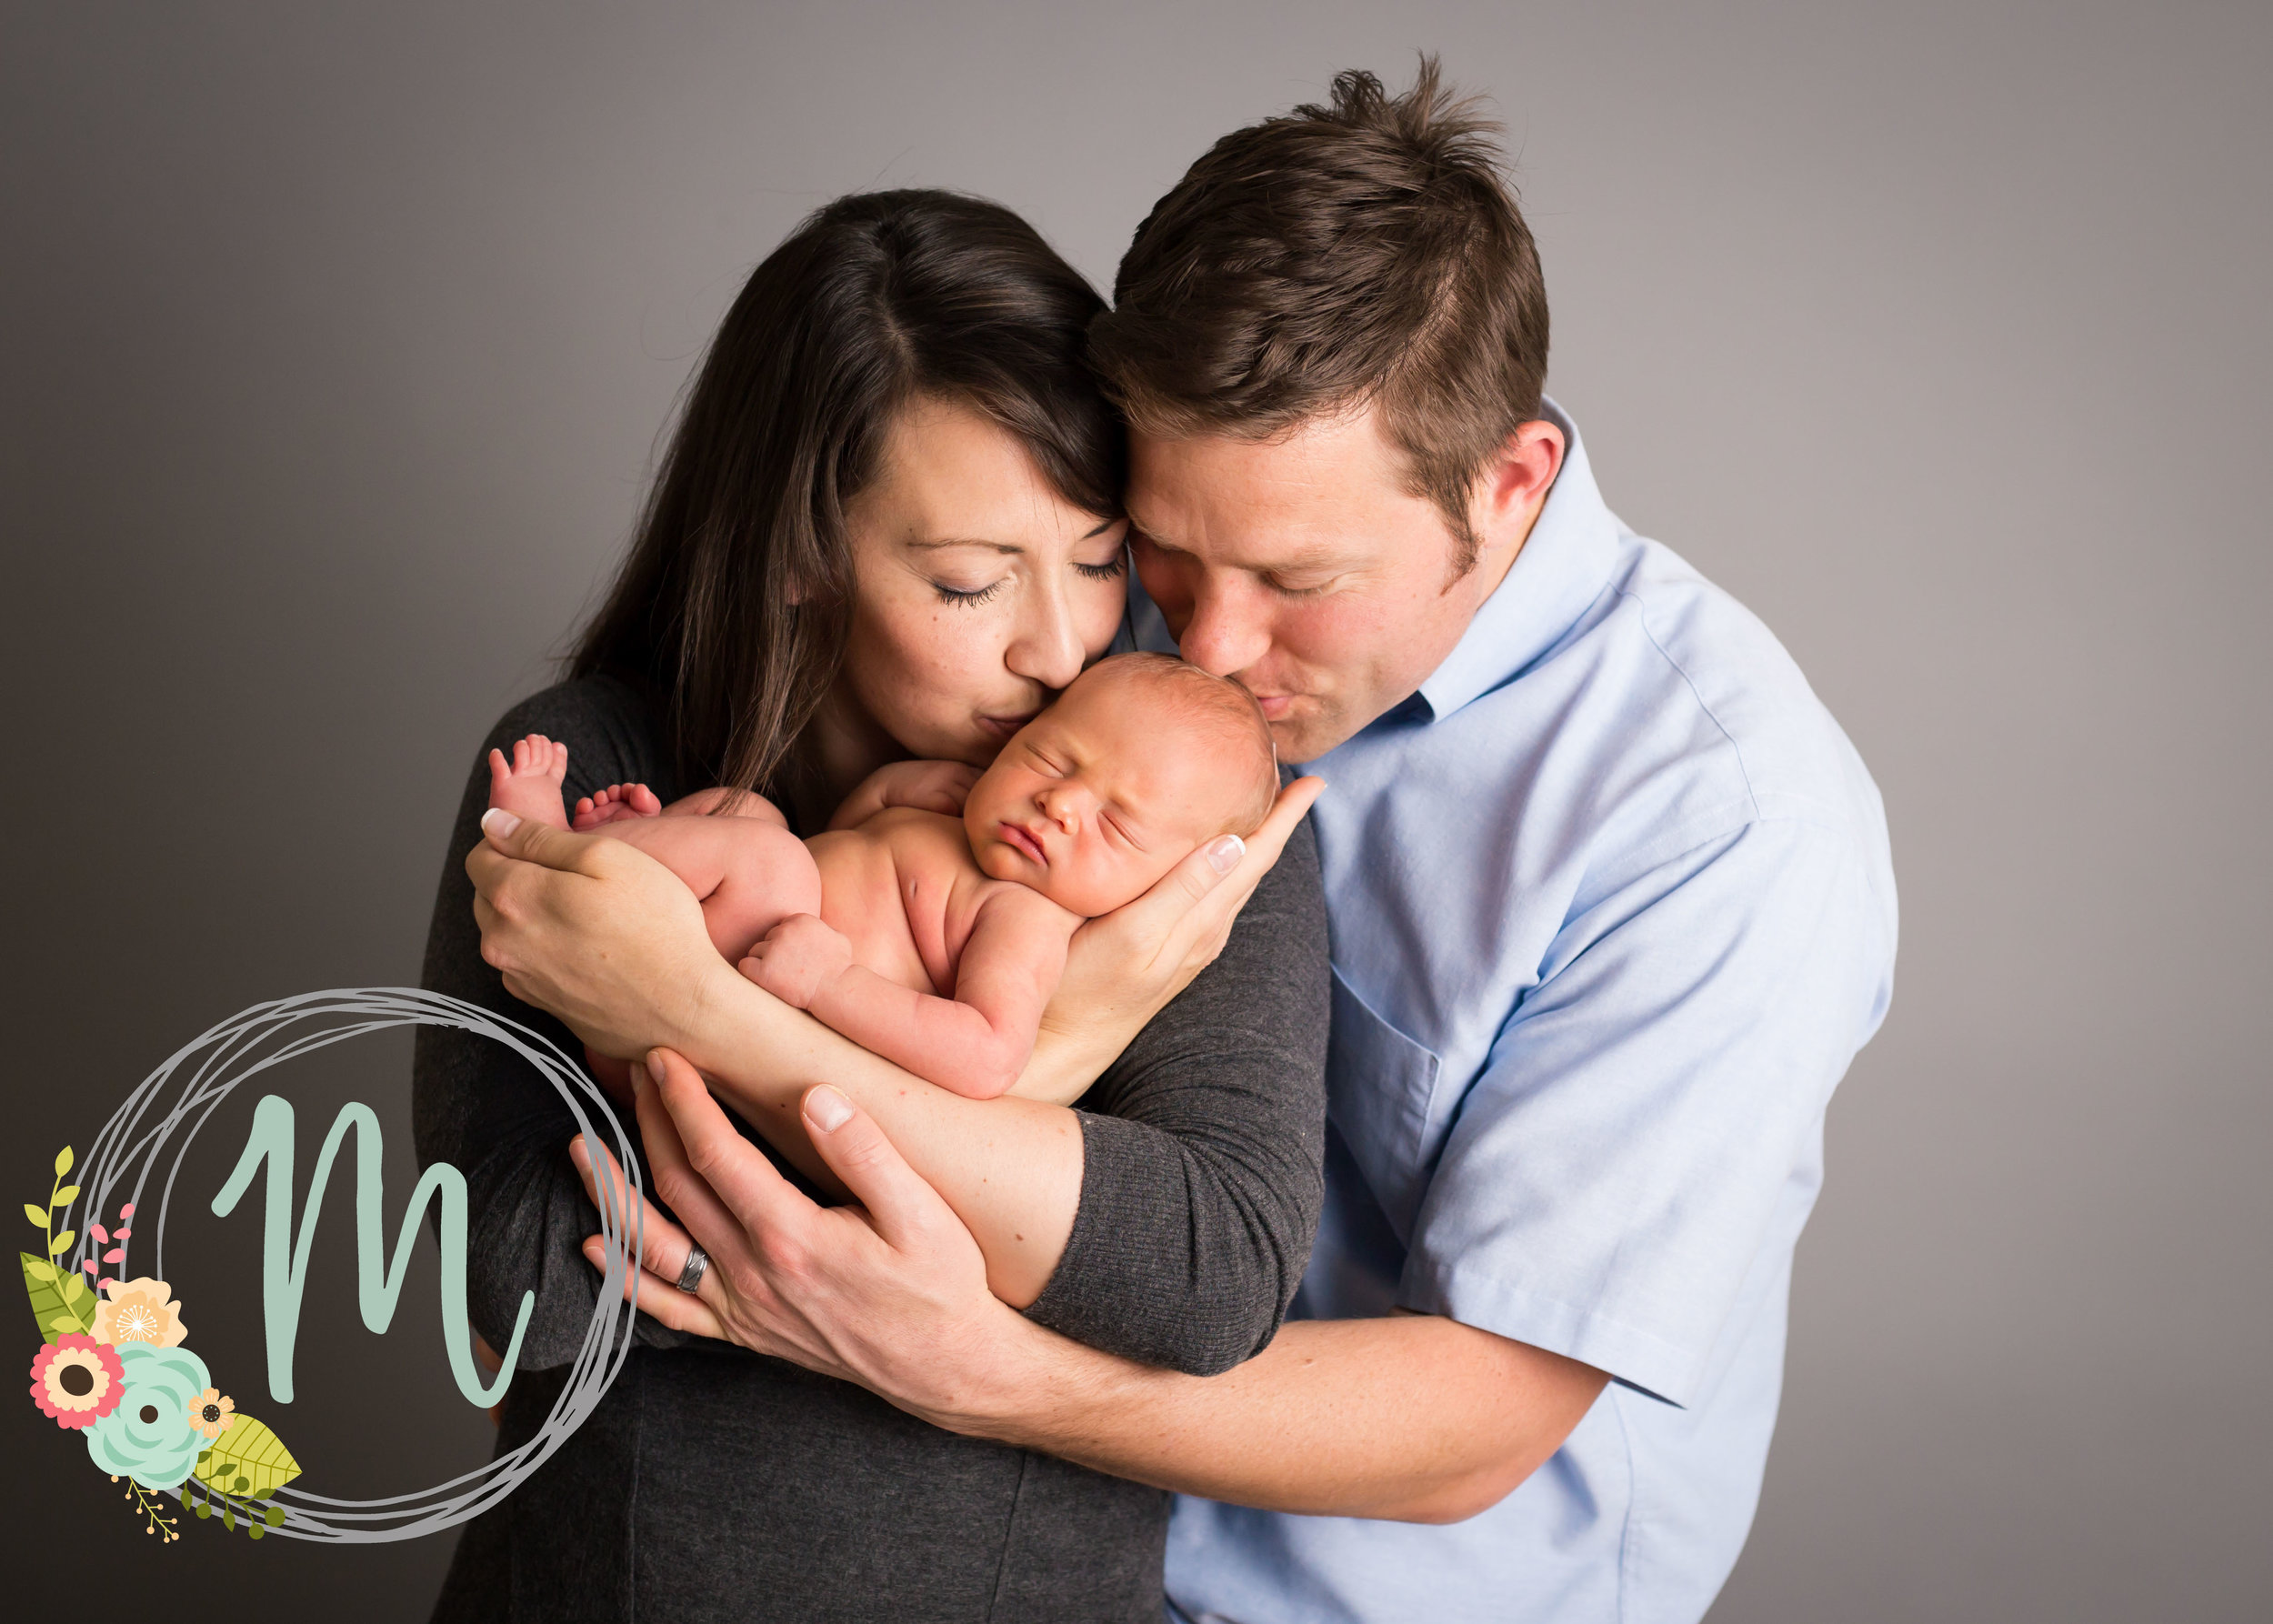 Mobie Photo - Utah Newborn Photography - Lehi, Utah